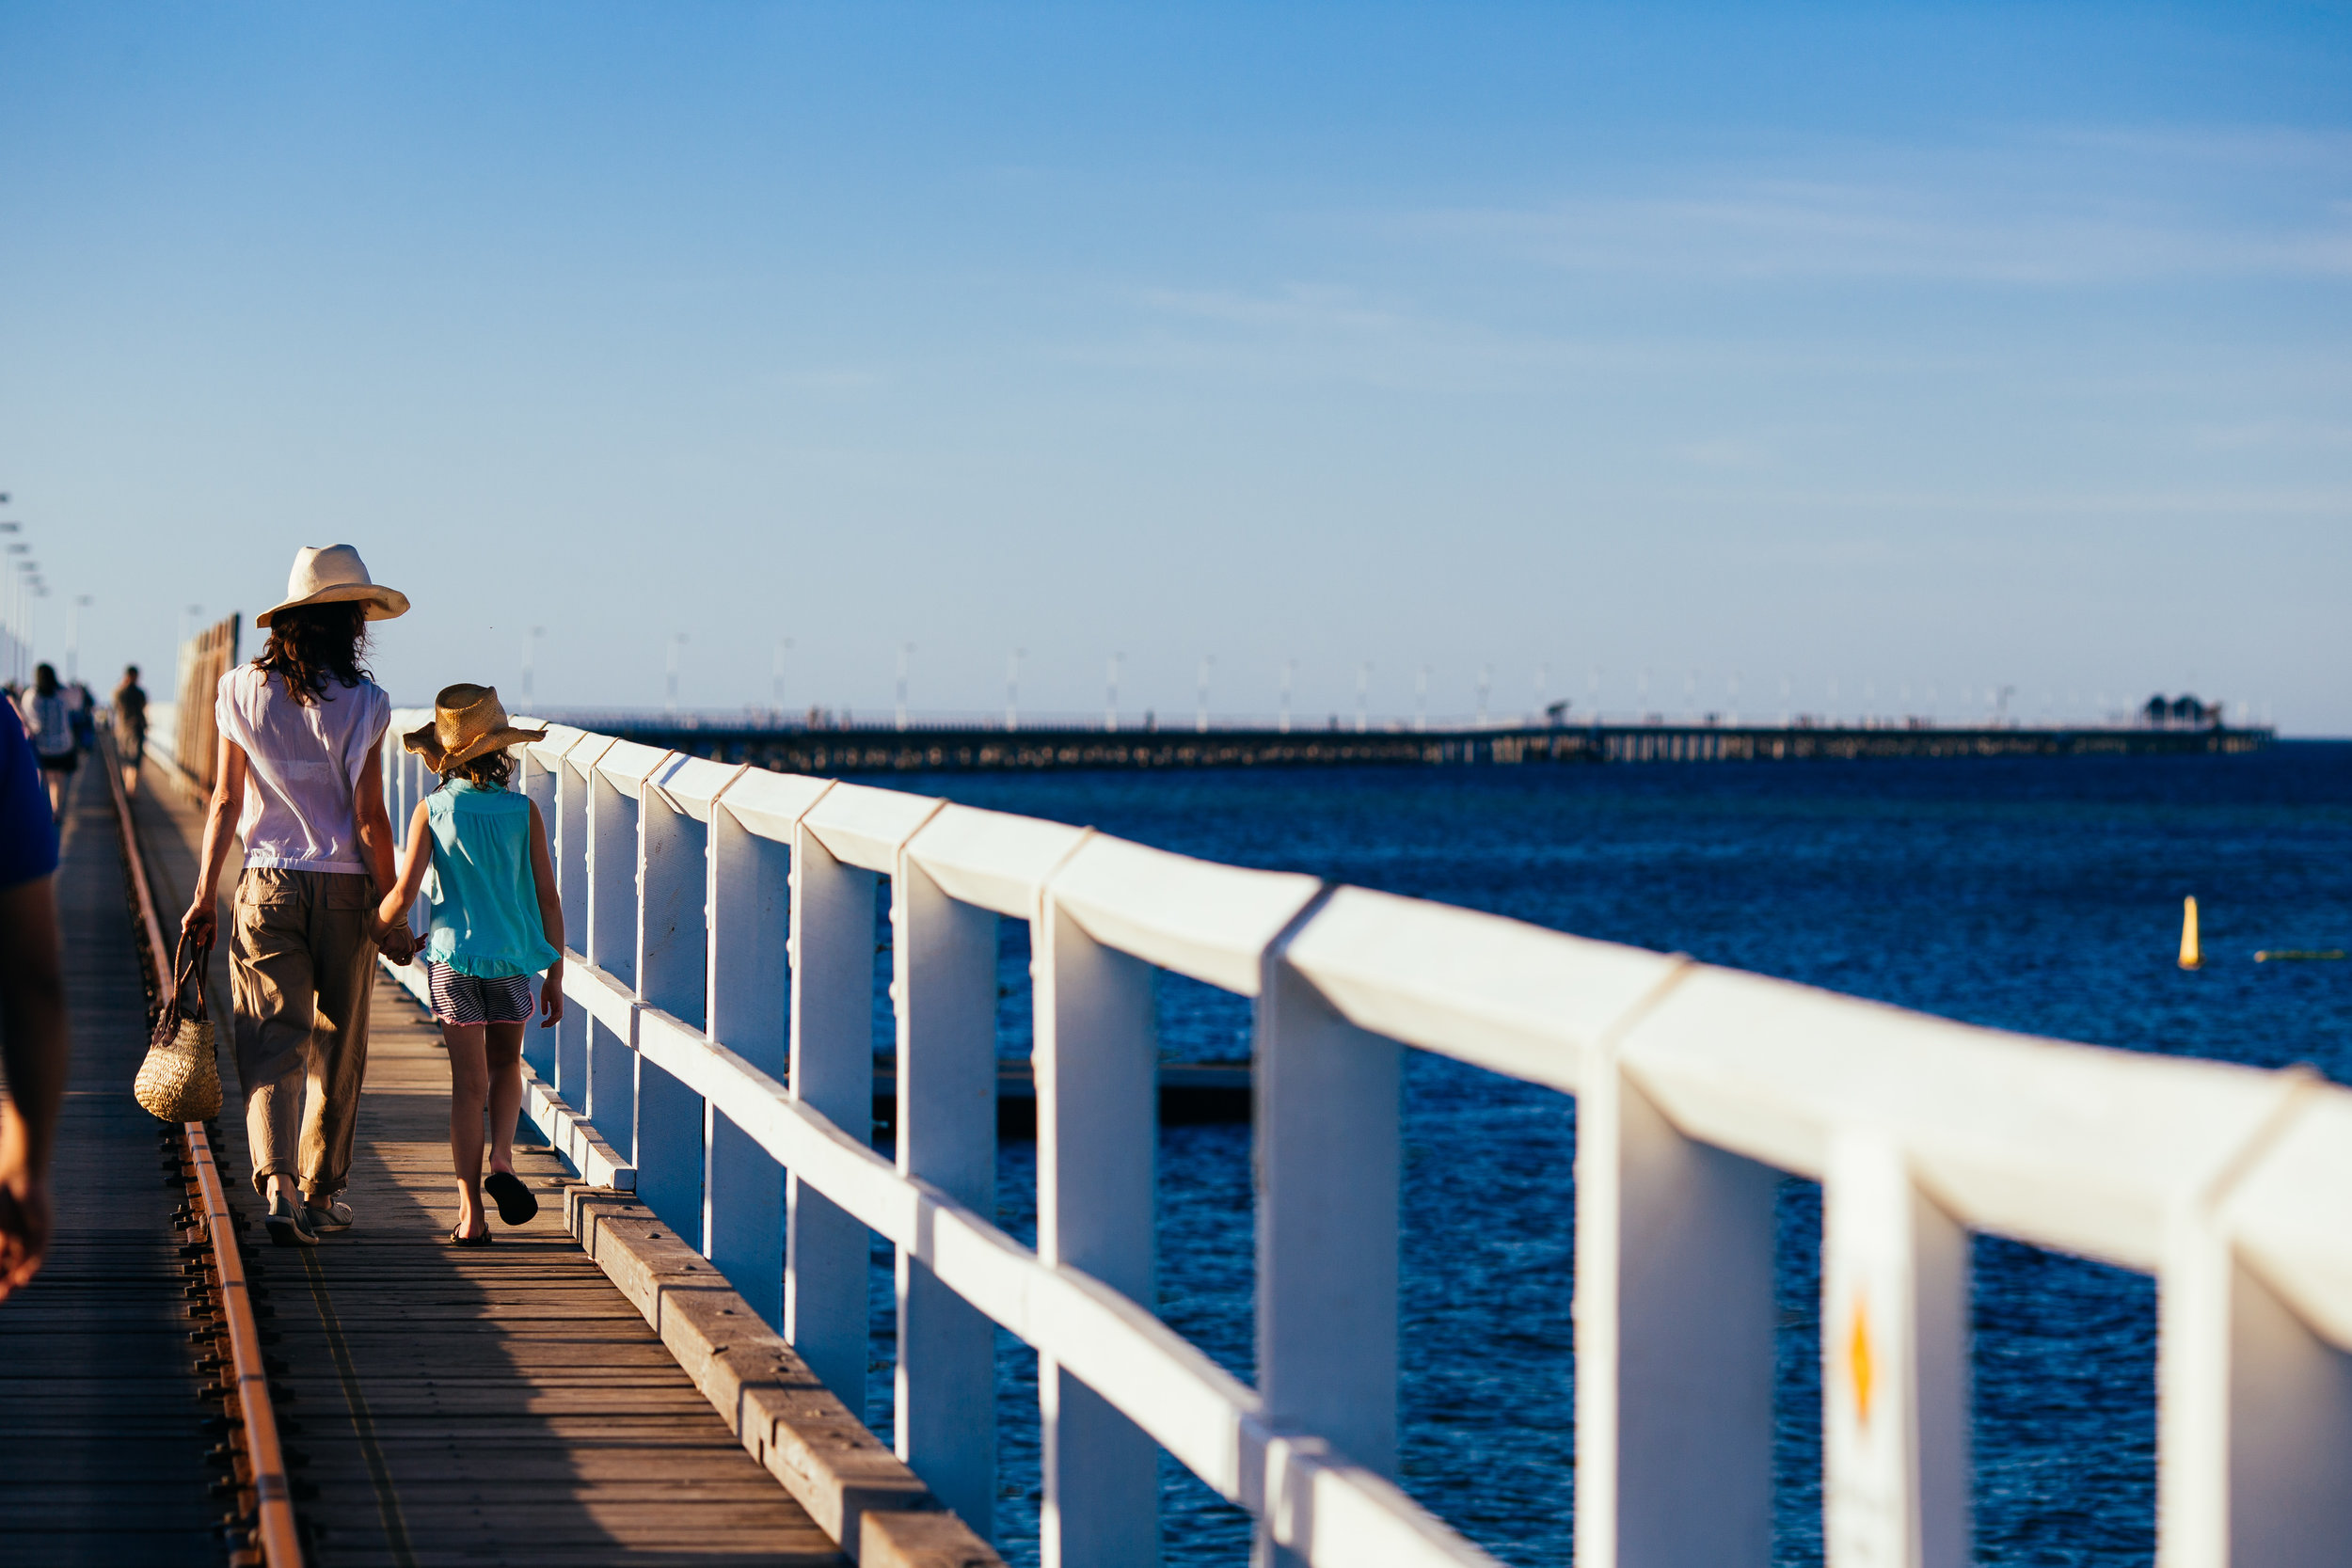 Your Hit List #2 - Stroll down the Busselton Jetty